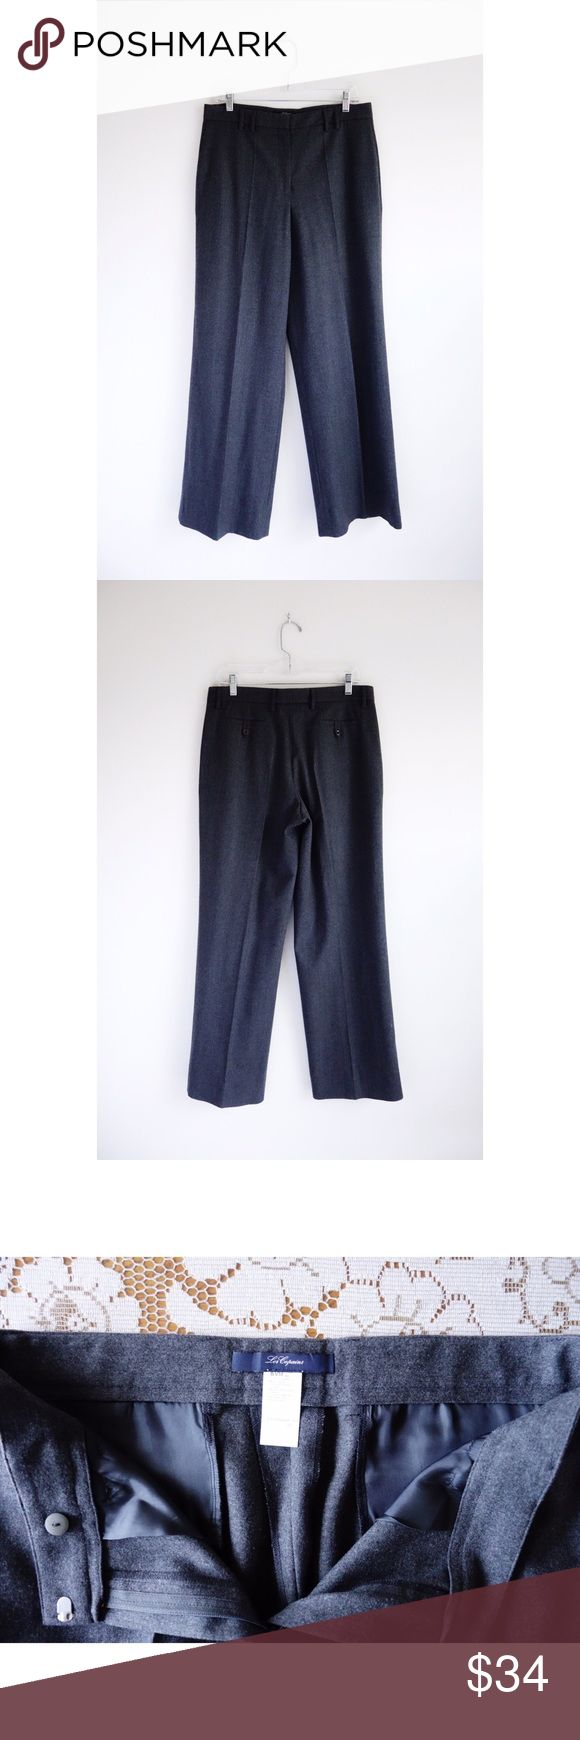 """Blue Les Copains Grey Stretch Wool Pants sz US 10 Blue Les Copains Grey Stretch Wool Pants size IT 46 US 10, EUC—no rips, stains, or holes, 95% wool, 5% elastane, 16.5"""" across waist, 12"""" front rise, 31.5"""" inseam, 23"""" leg opening, thin waistband with belt loops, zip up with hook and eye closure, slant seam pockets in front, back welt pockets with buttons in back Les Copains Pants Straight Leg"""